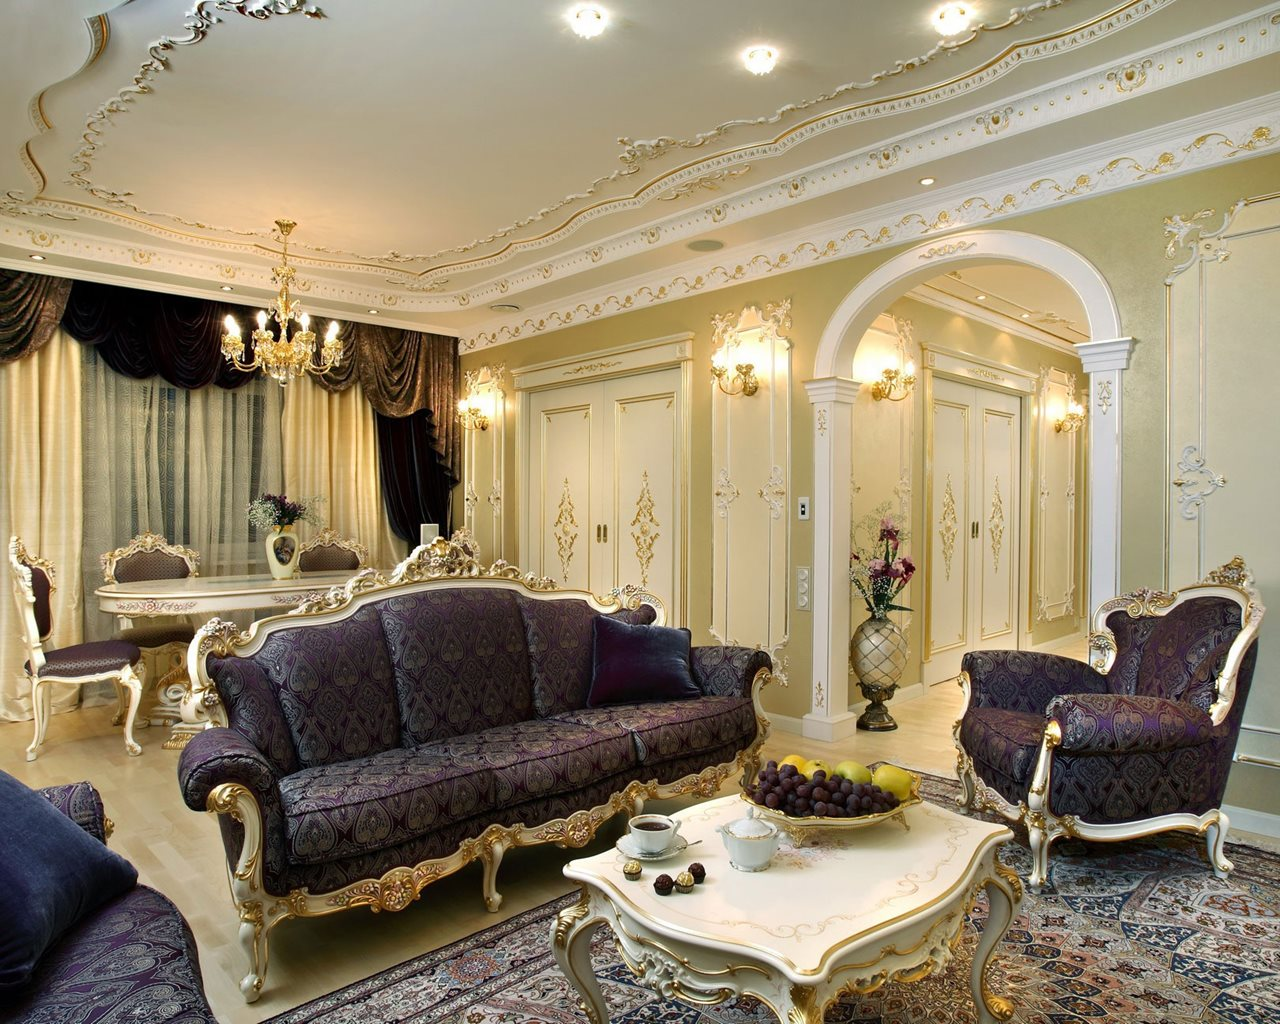 Baroque style interior design ideas for Interior designs ideas